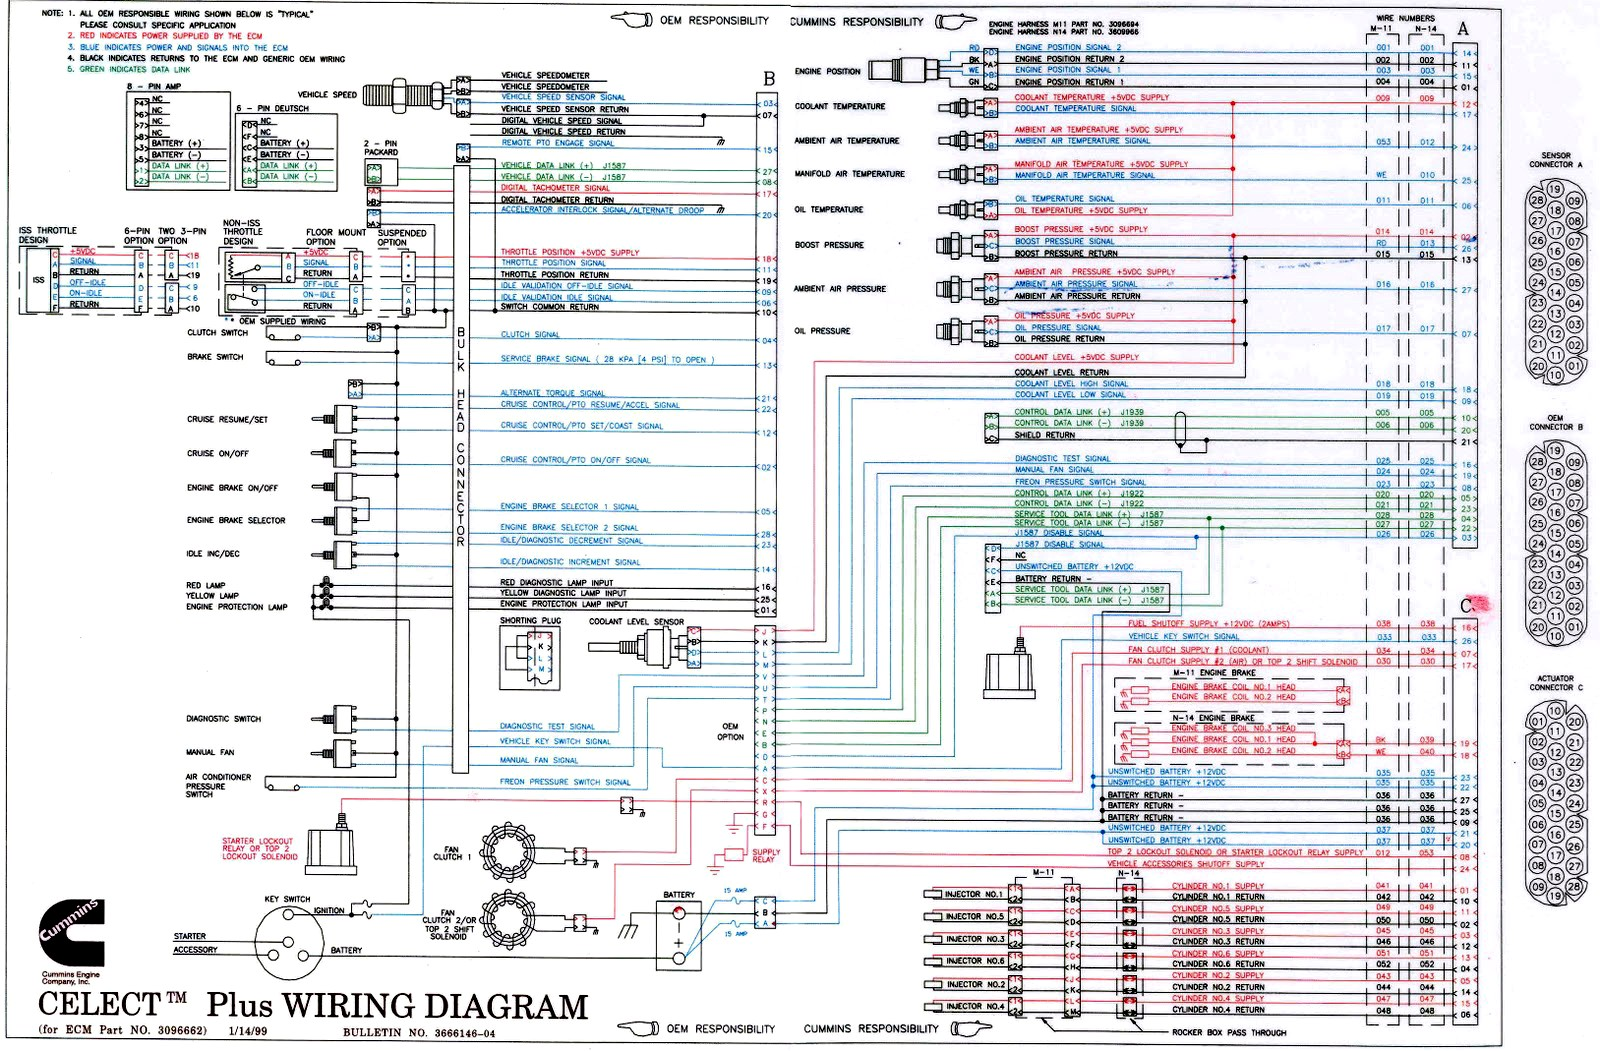 Celect Plus Wiring Diagram Cummins Servicio Diesel Americano